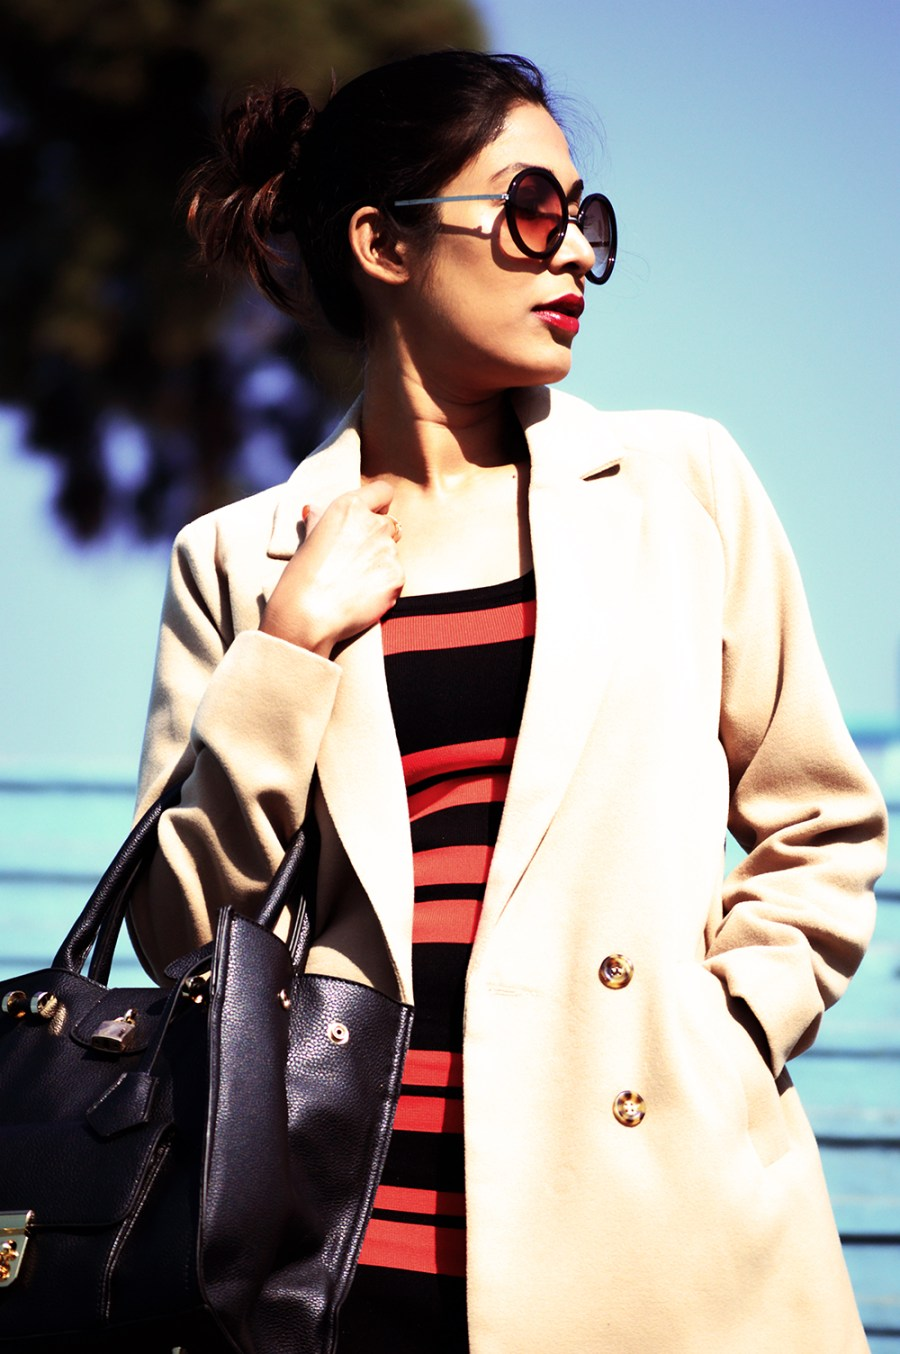 Fashion, Style, Indian Fashion color, Striped Dress, Color, Photography, Street Style, Winter Fashion, Beauty-5